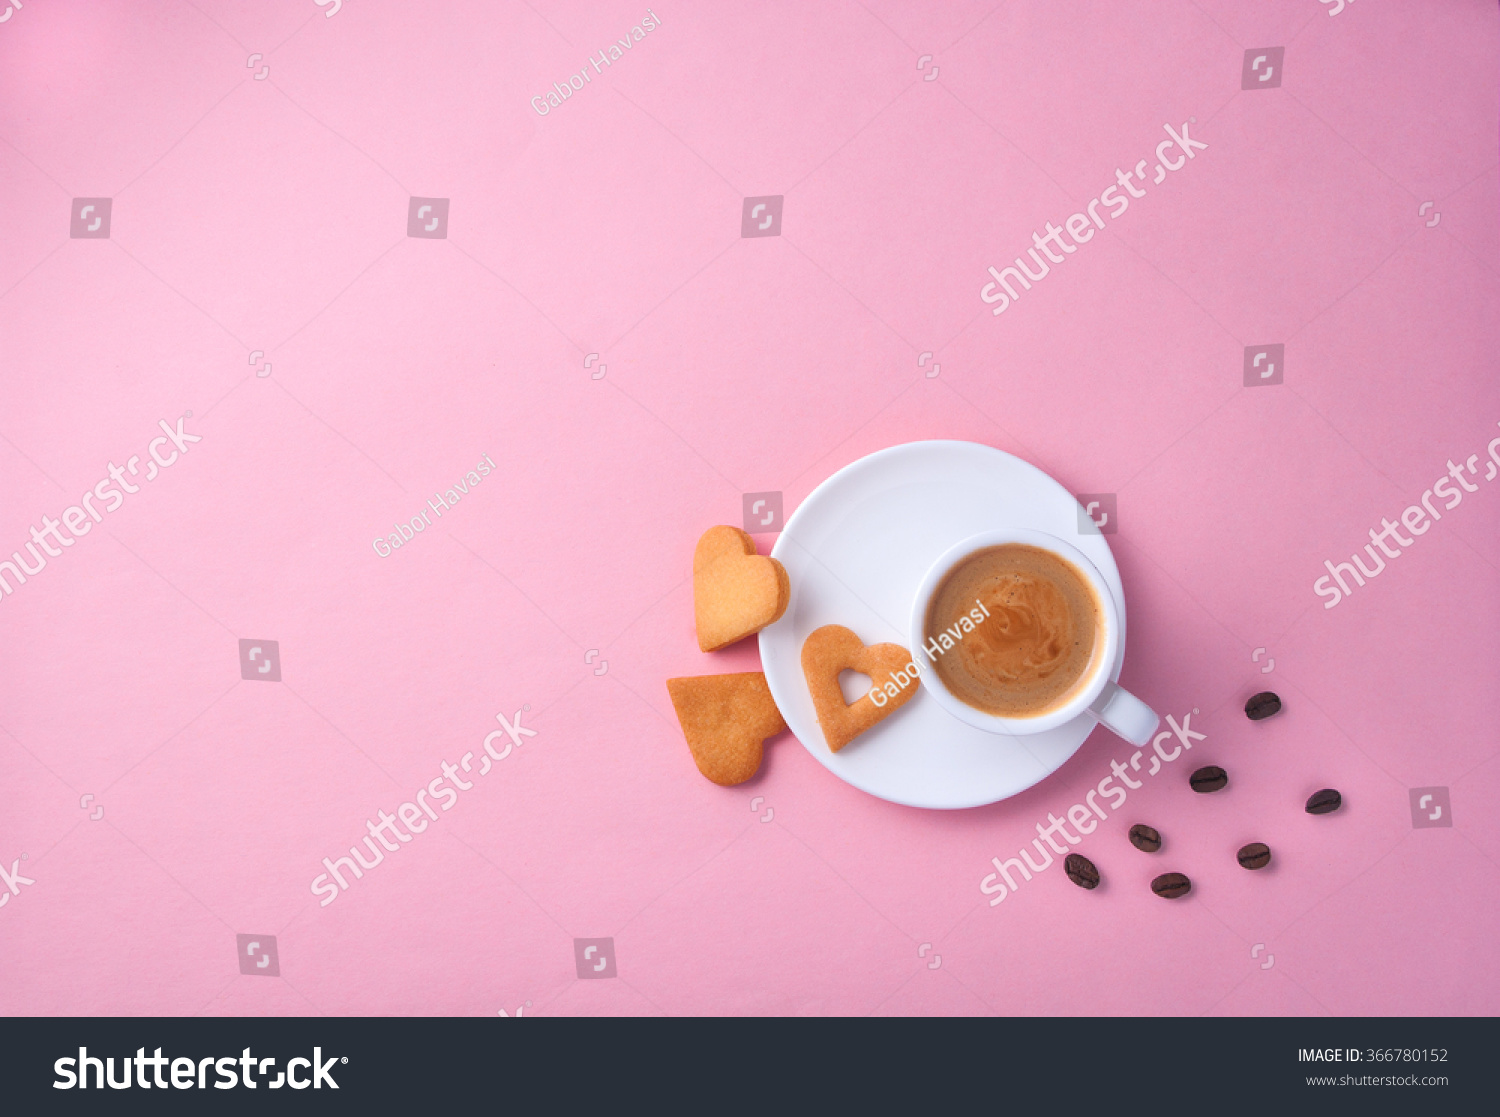 stock-photo-cup-of-coffee-on-pink-paper-